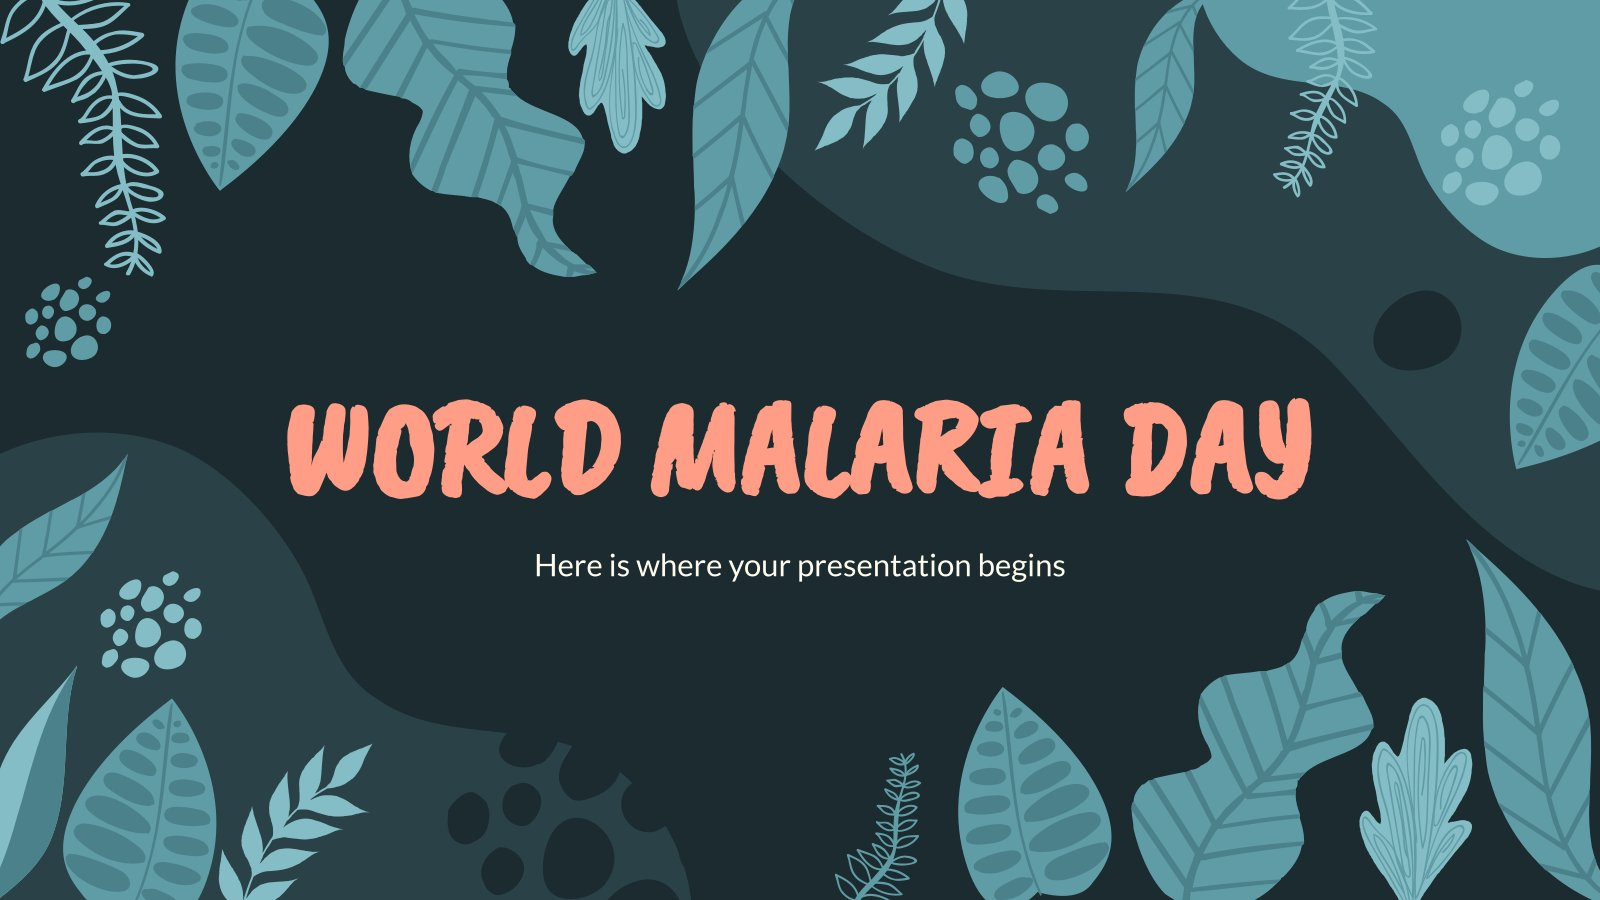 World Malaria Day presentation template